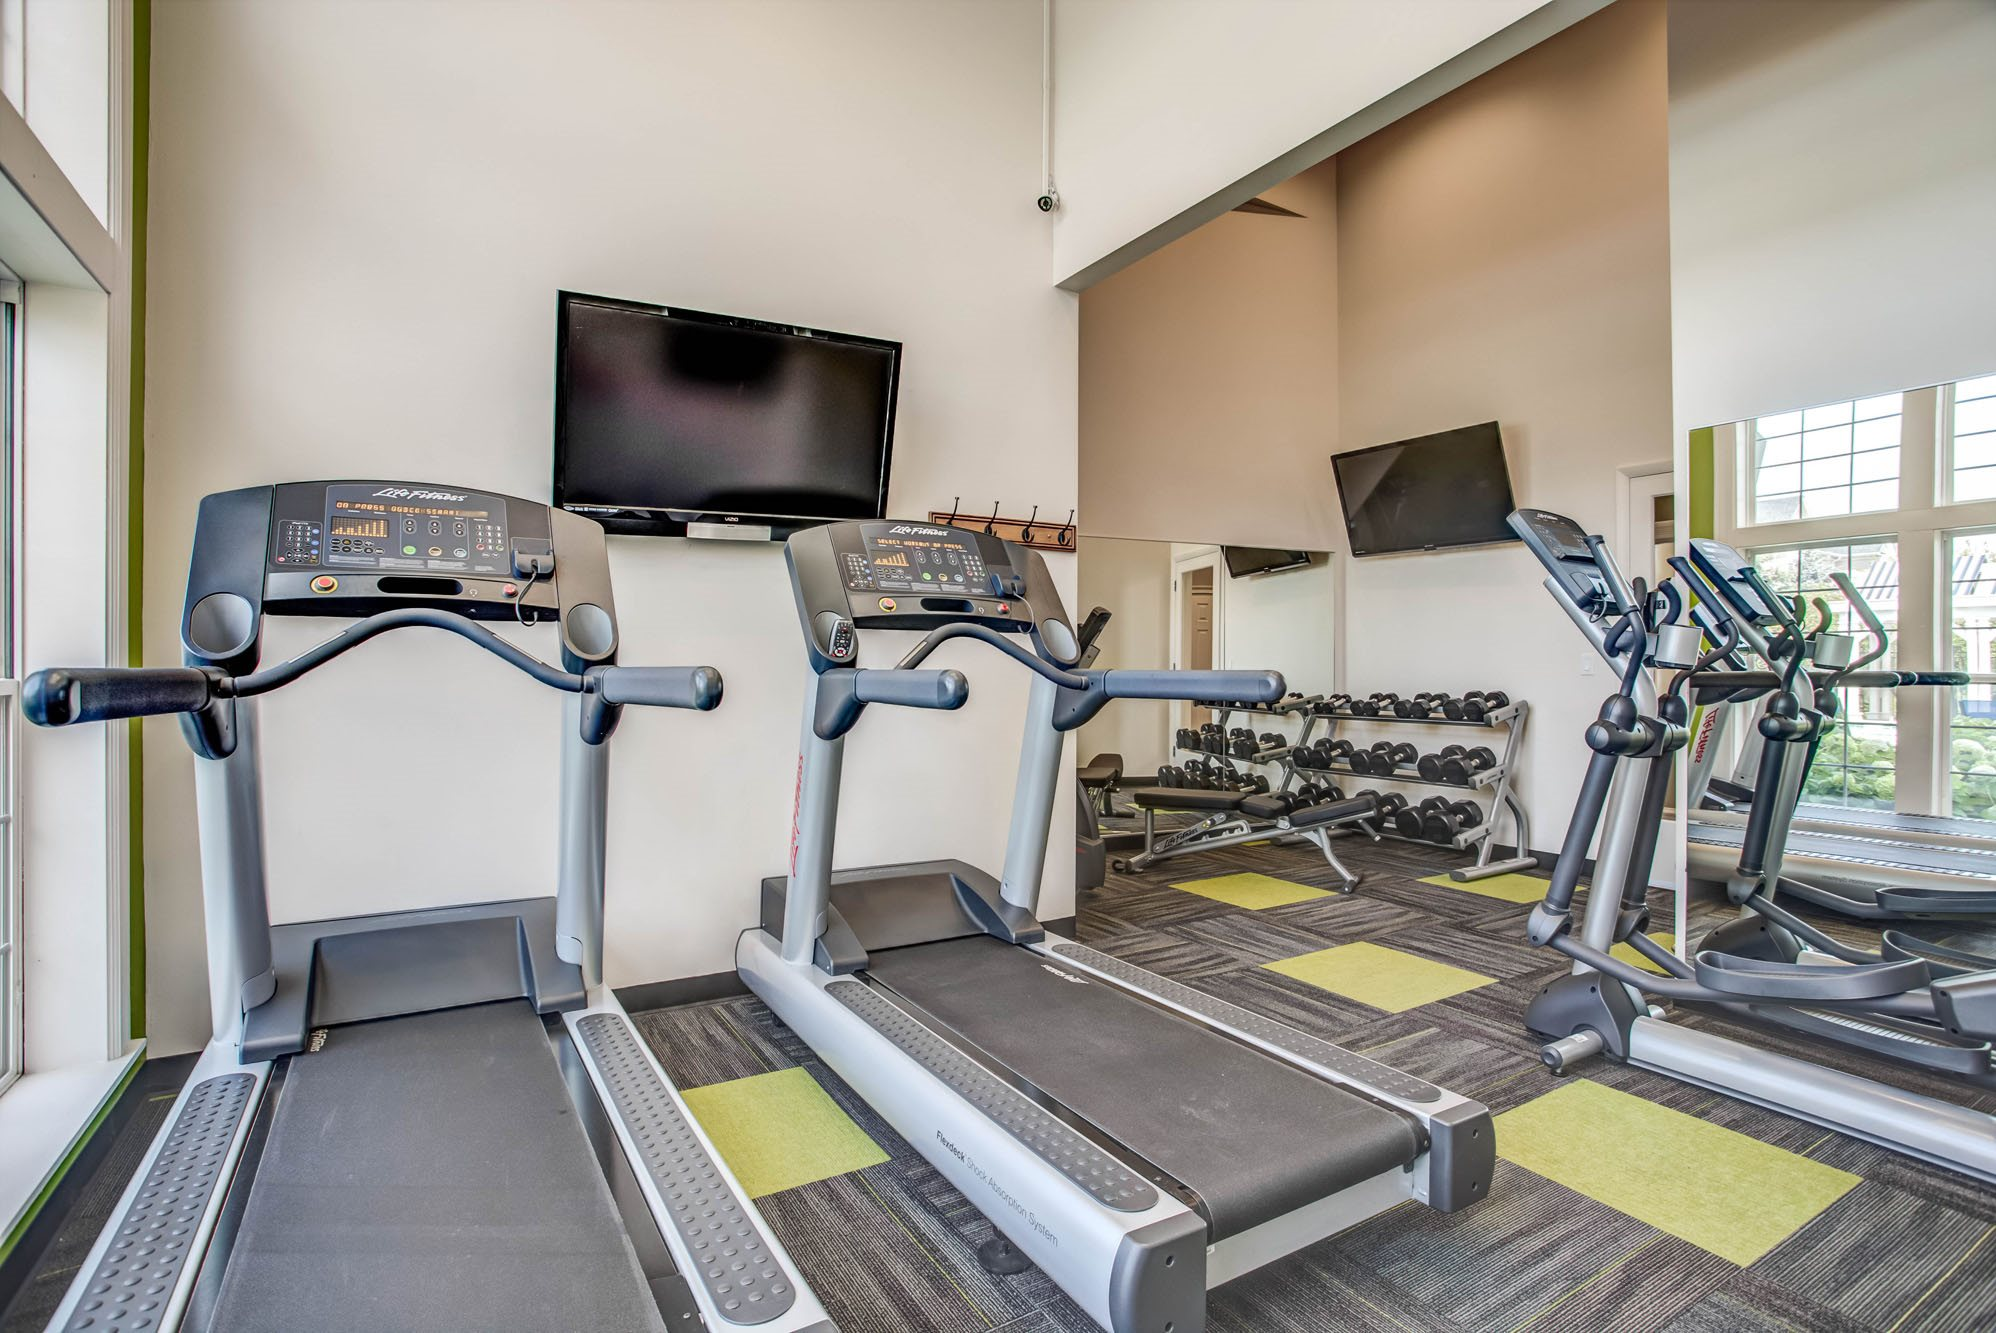 fitness center- cardio machines, free weights